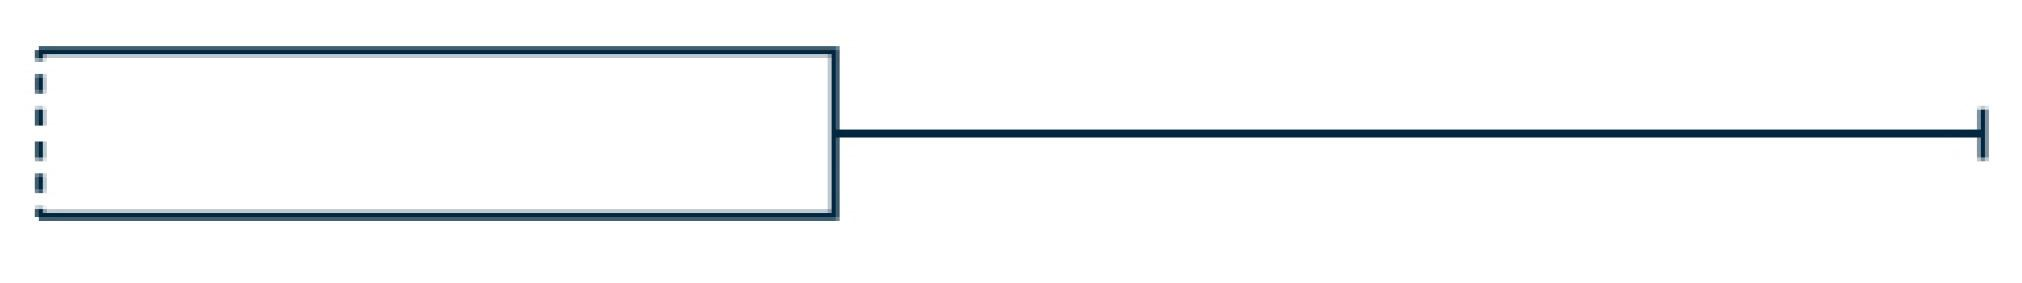 This is a boxplot. There is no left whisker. The boxplot consists of a box with dashed line at the left edge, and a right whisker.